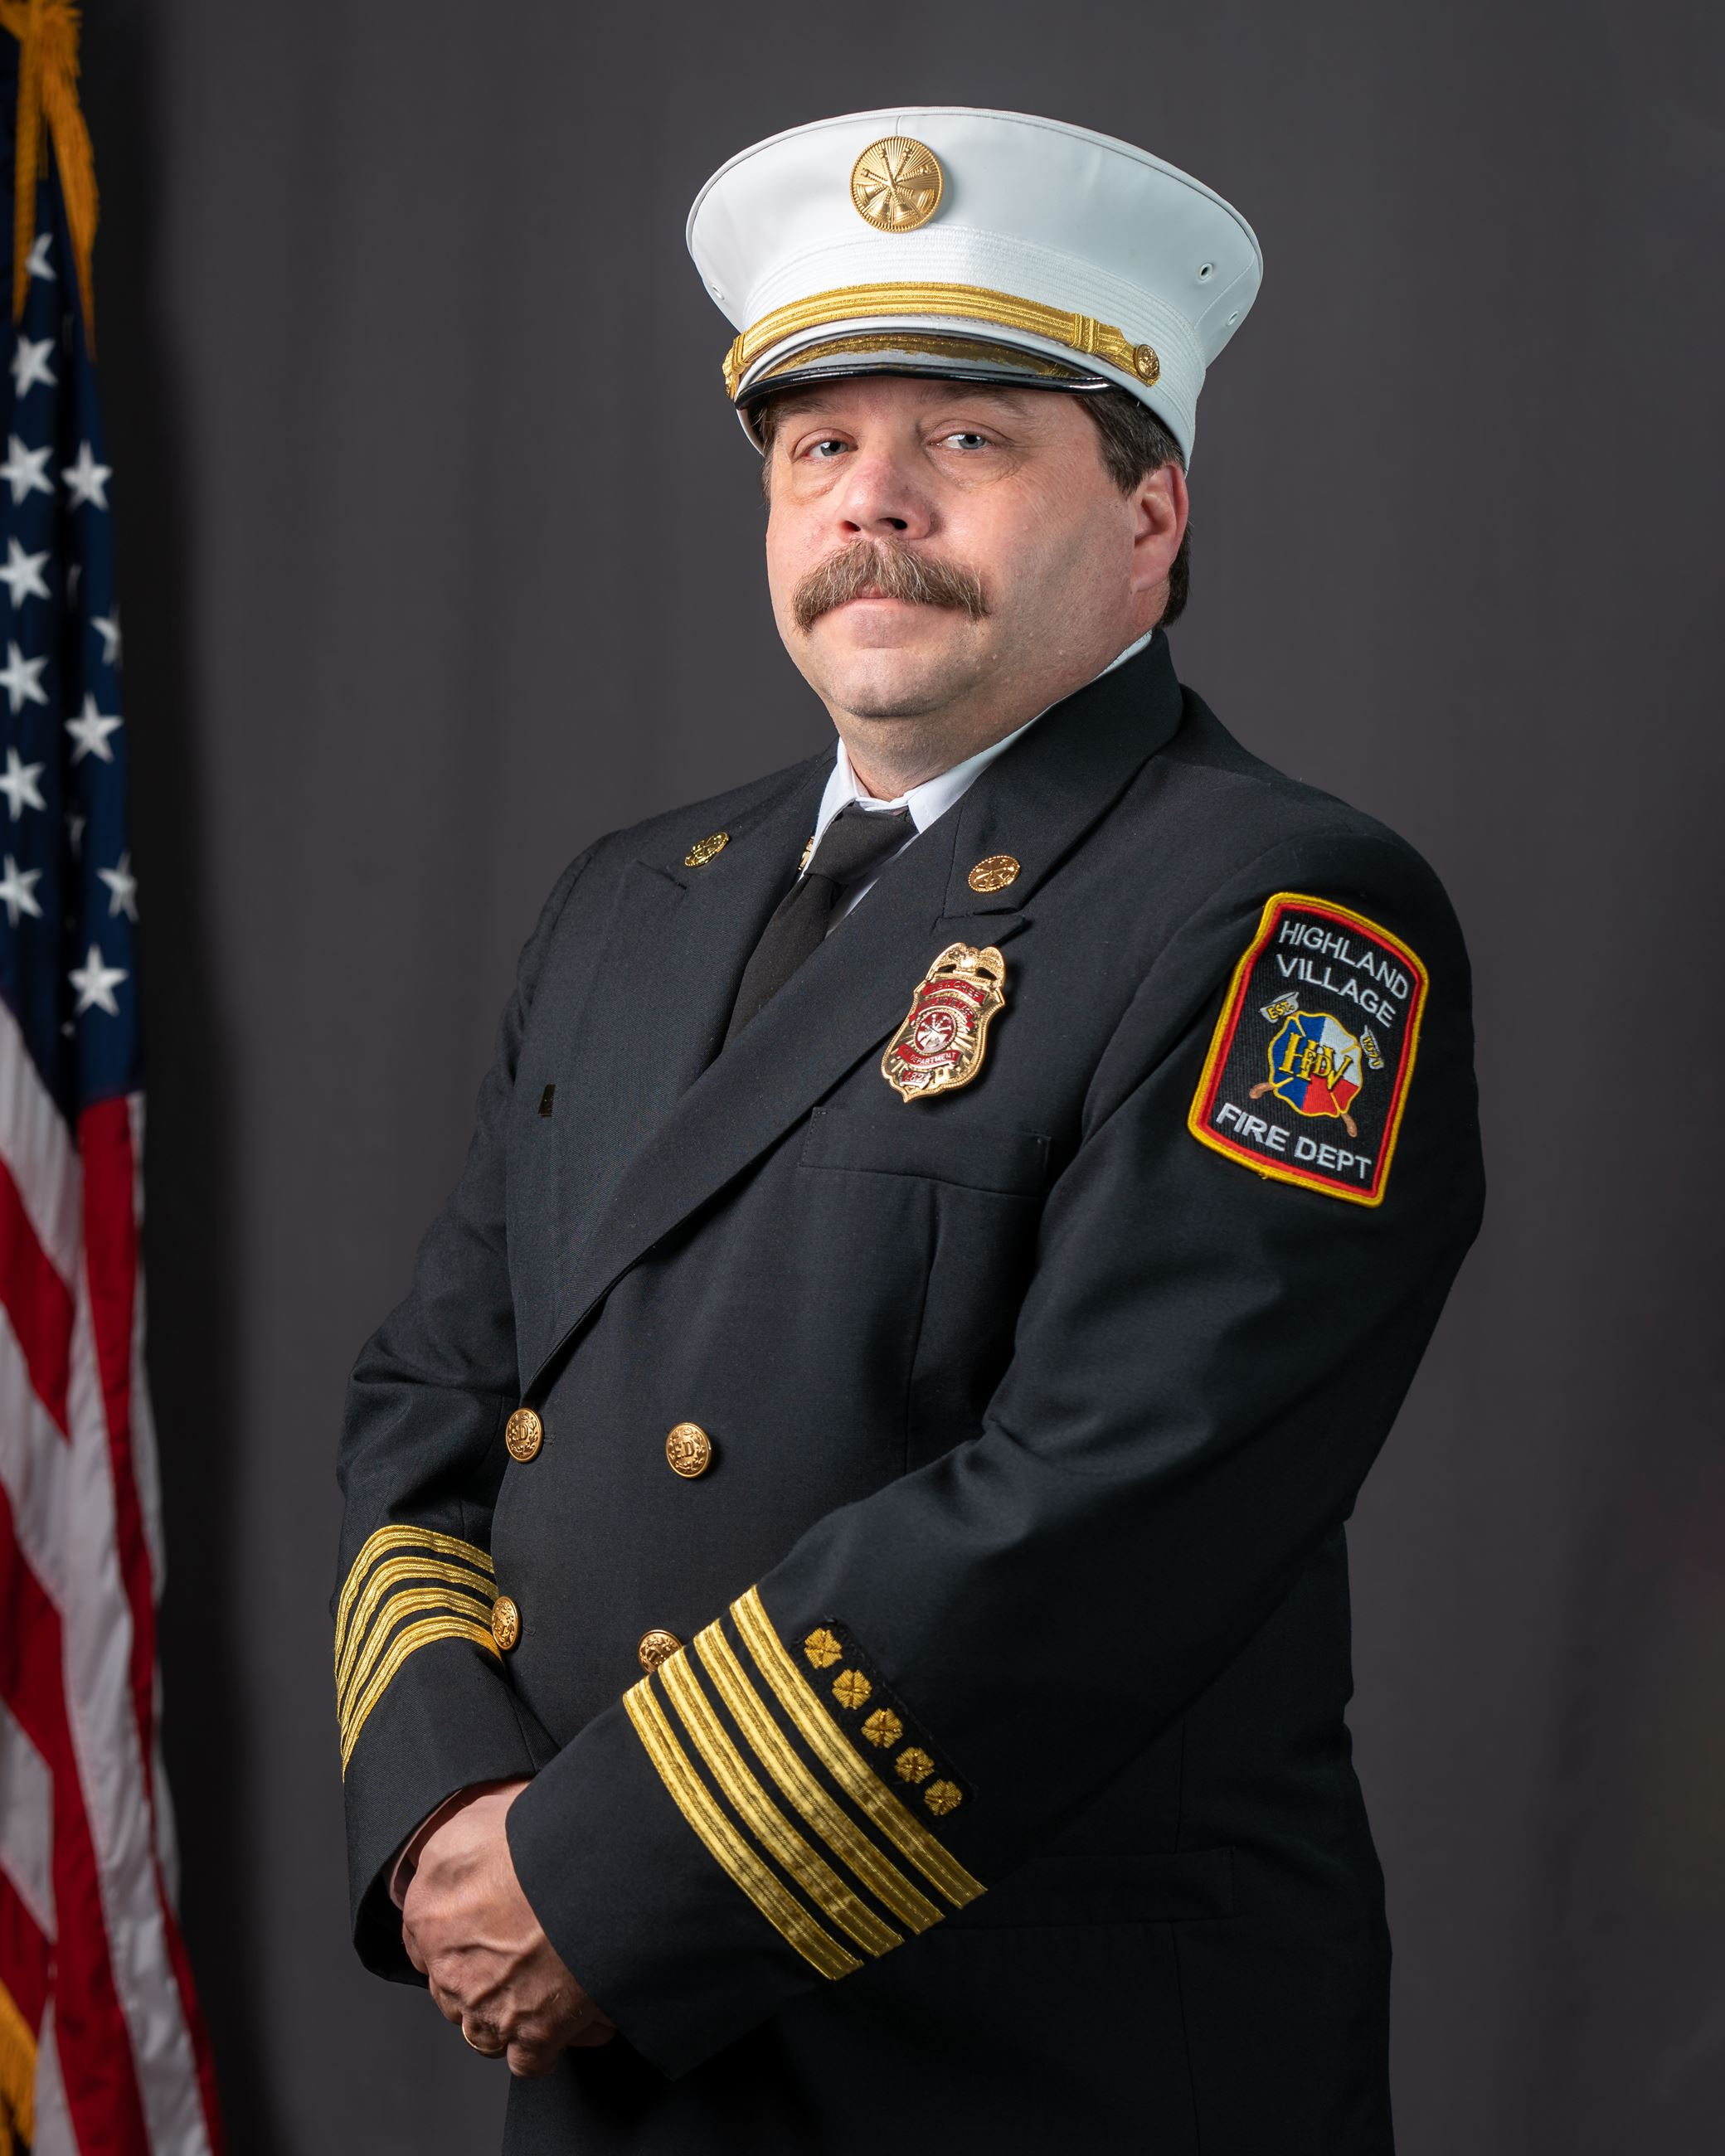 2018 Assistant Chief Collier, Jason